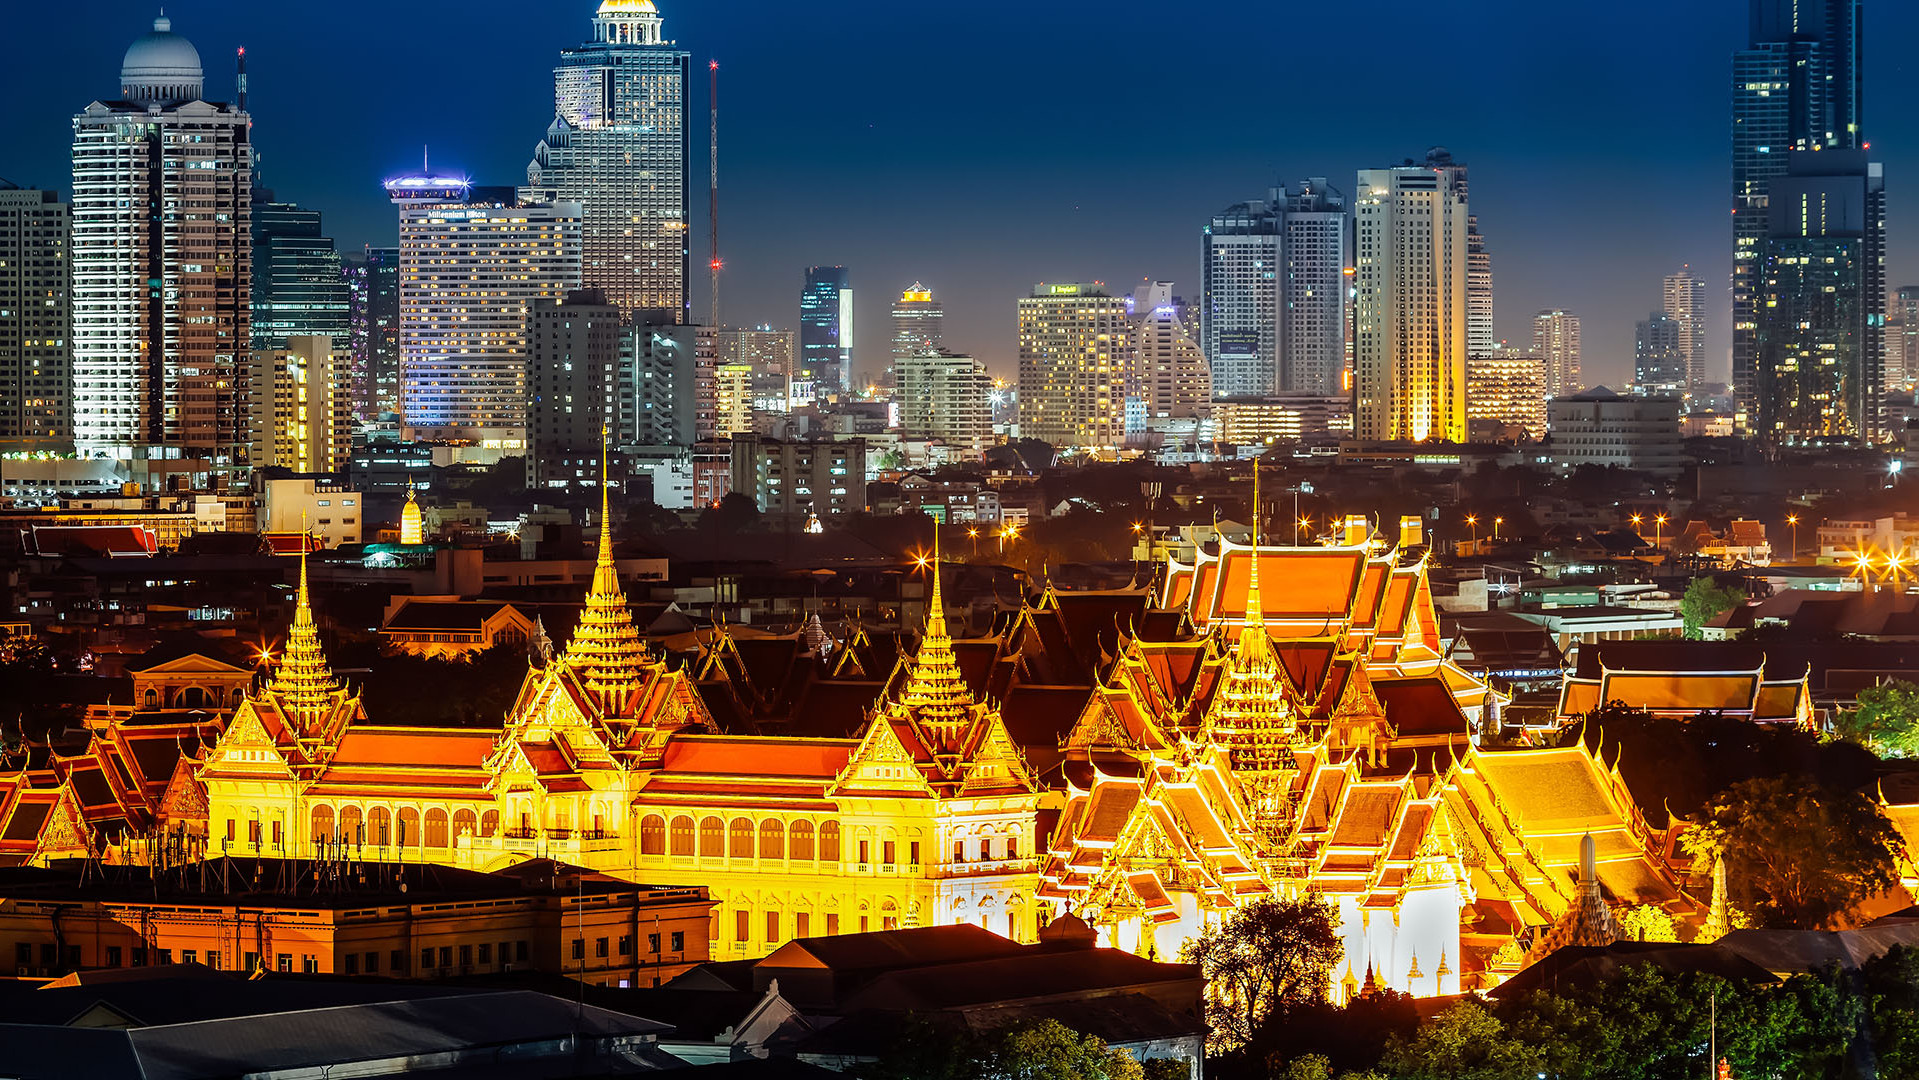 The Grand Palace - DTC4F